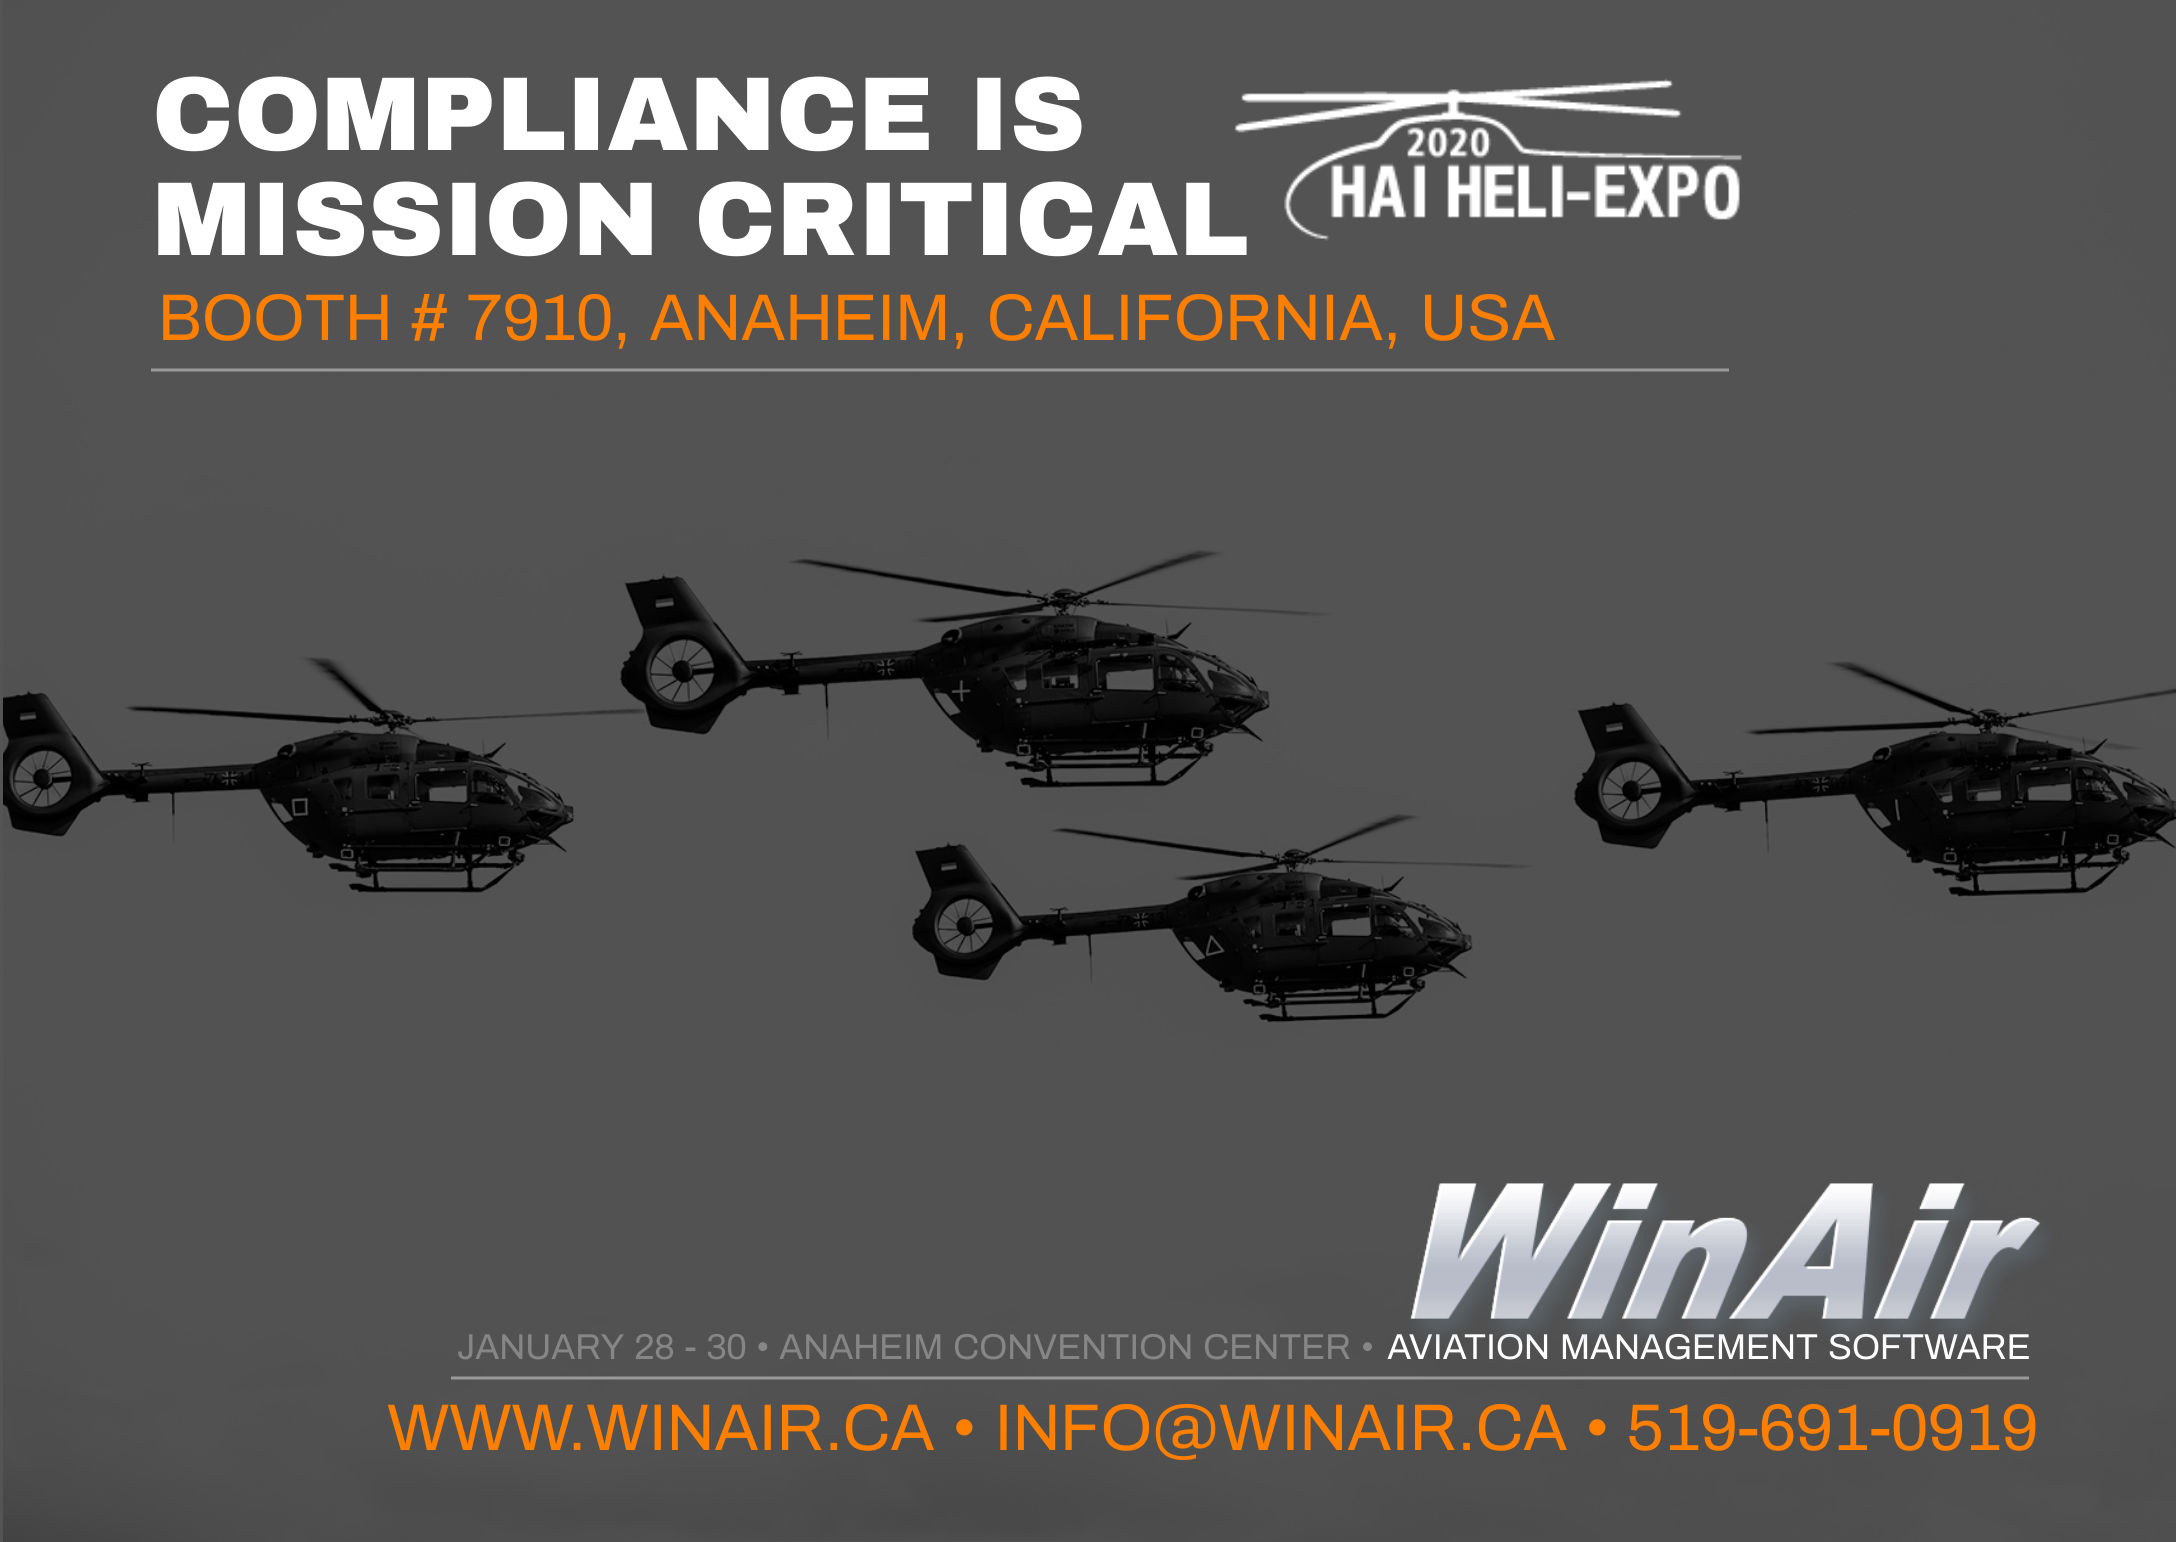 WinAir - HAI Heli-Expo 2020 Promotional Image with helicopters - Booth 7910 - Aviation Management Software - Compliance is Mission Critical